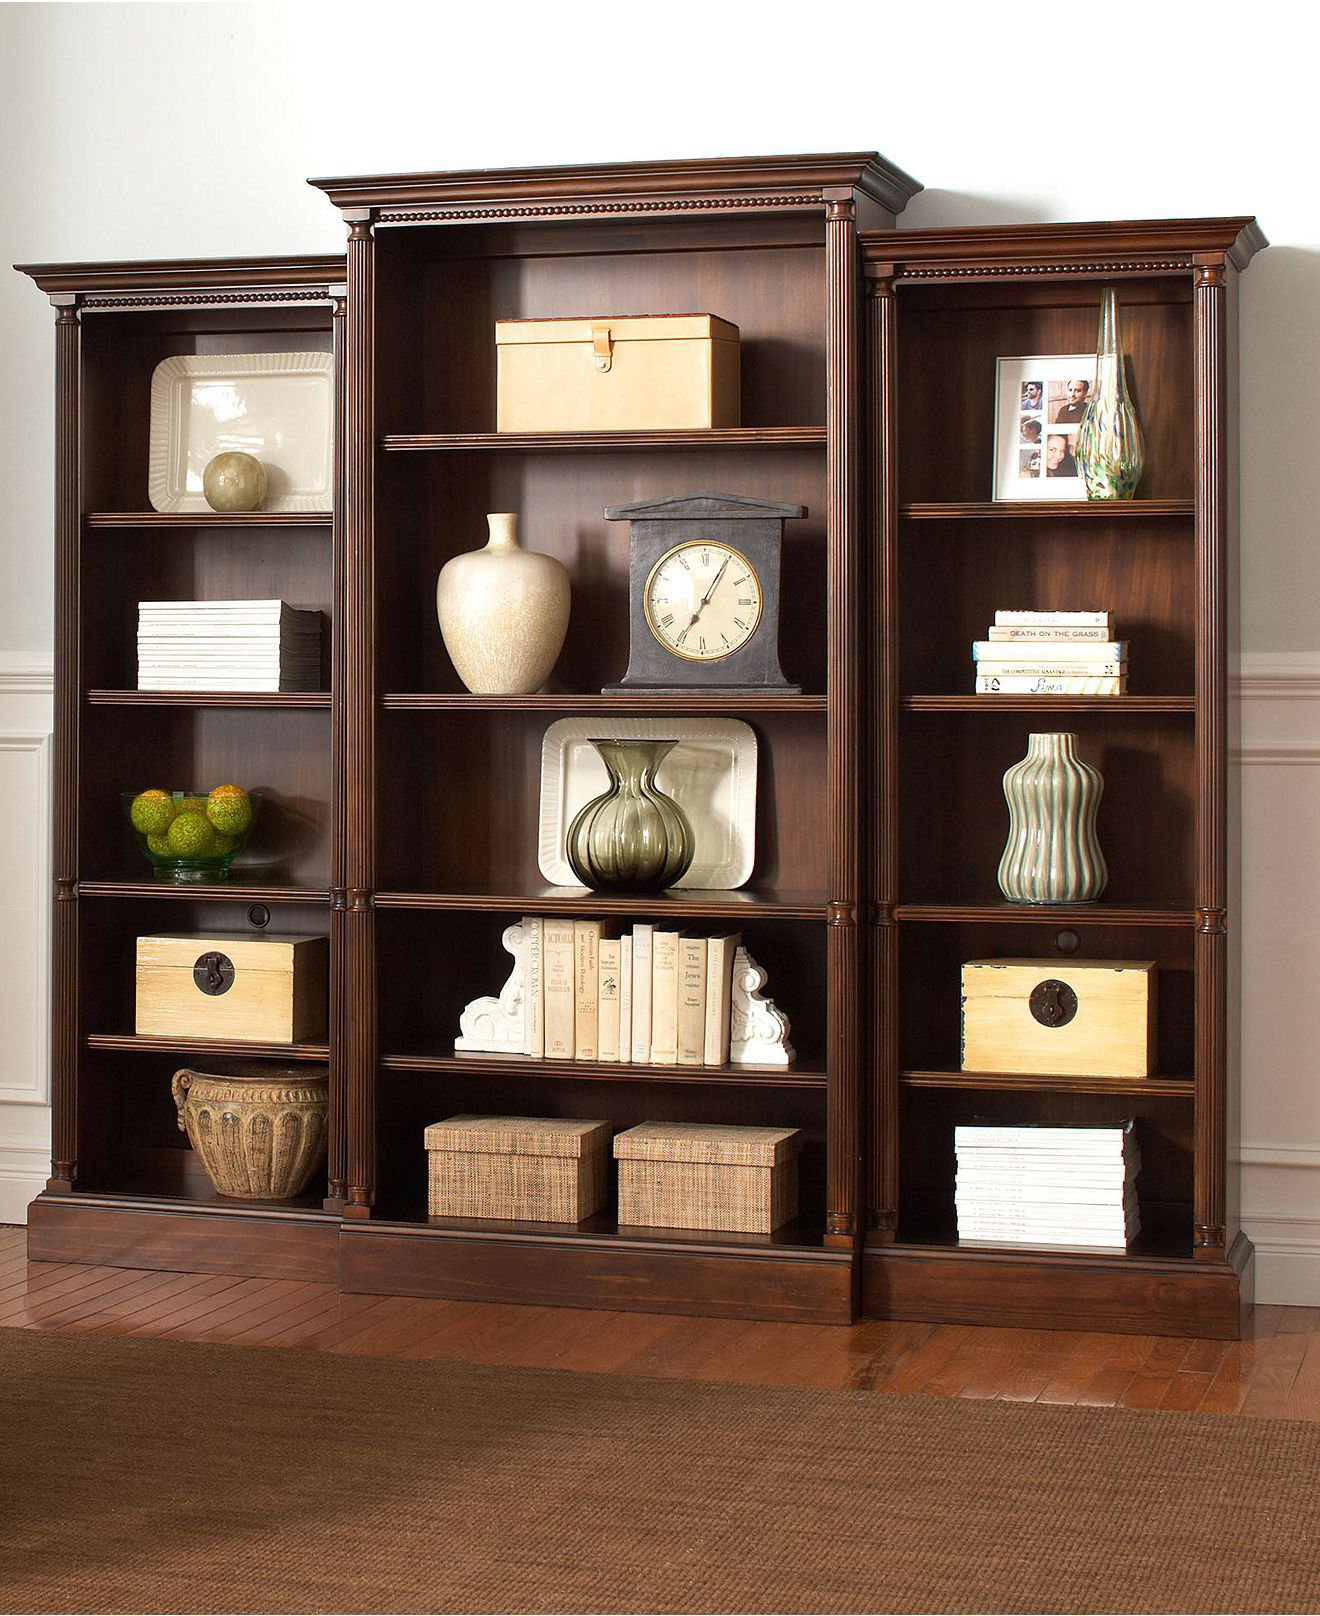 Www Macyfurniture: Macy's Furniture @BBT.com